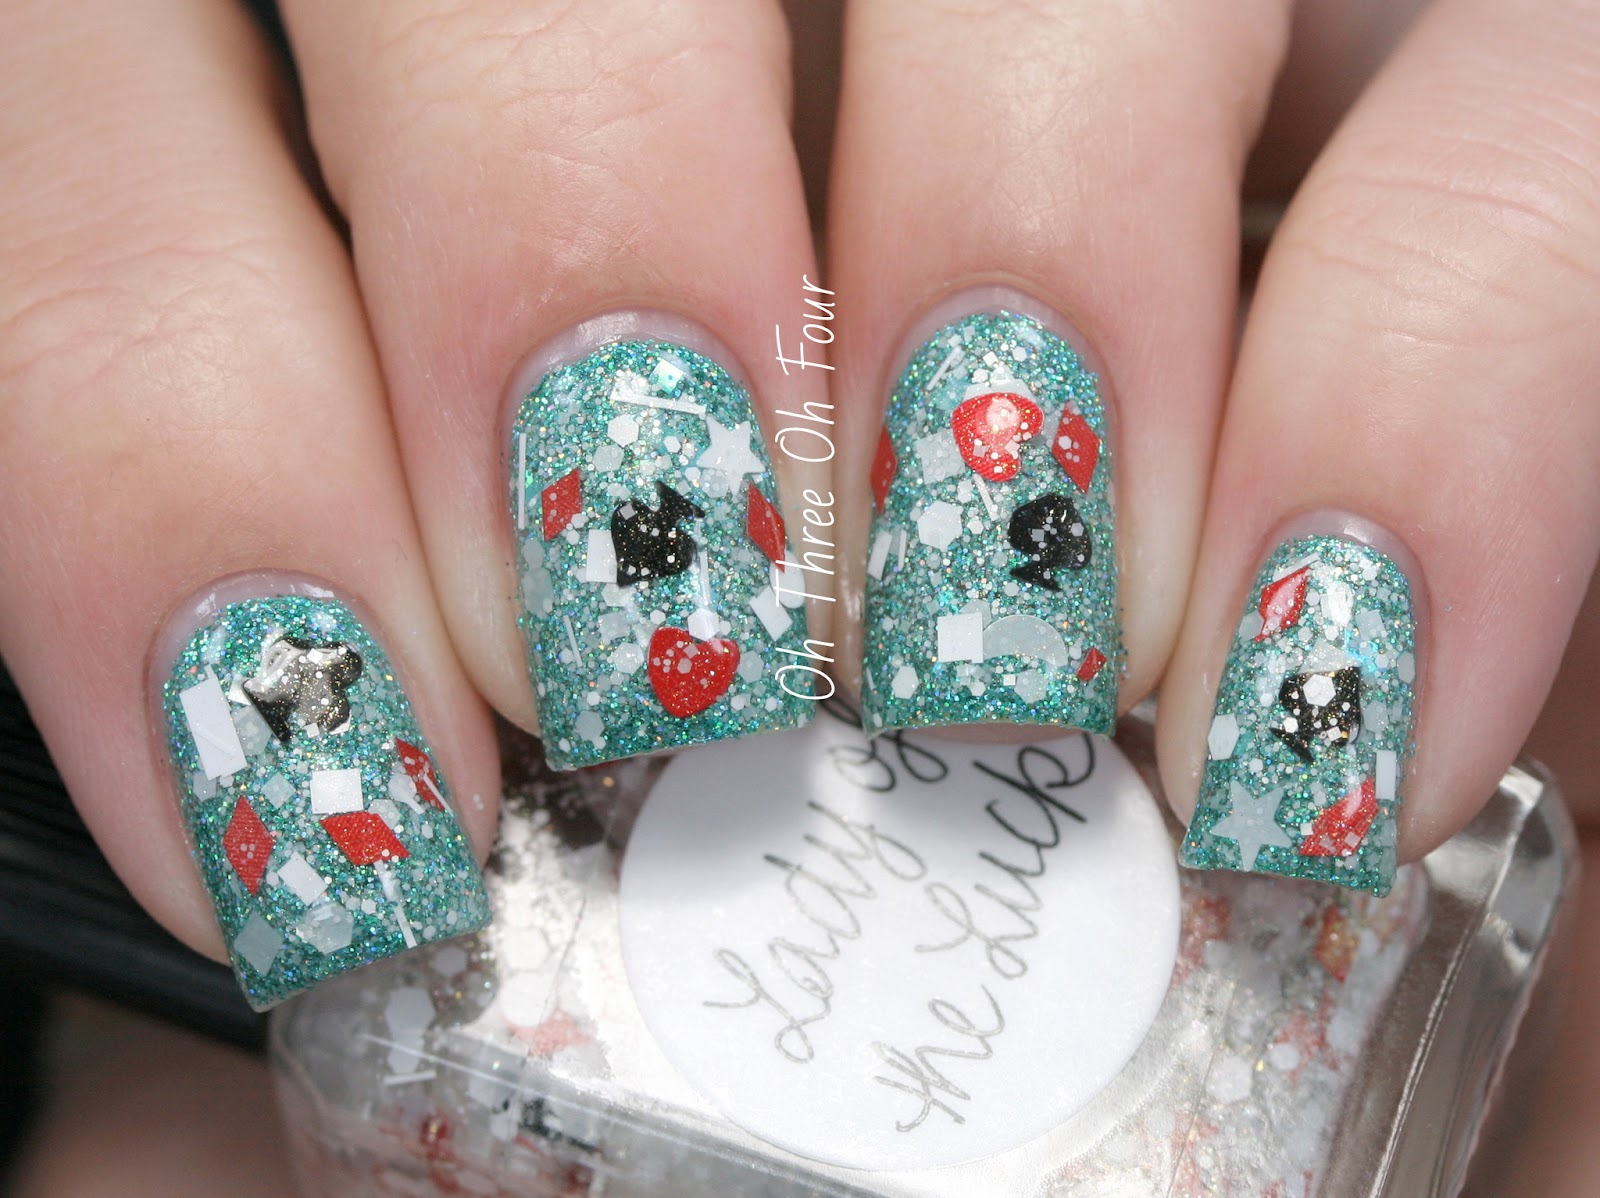 Lynnderella Lady of the Luck swatch